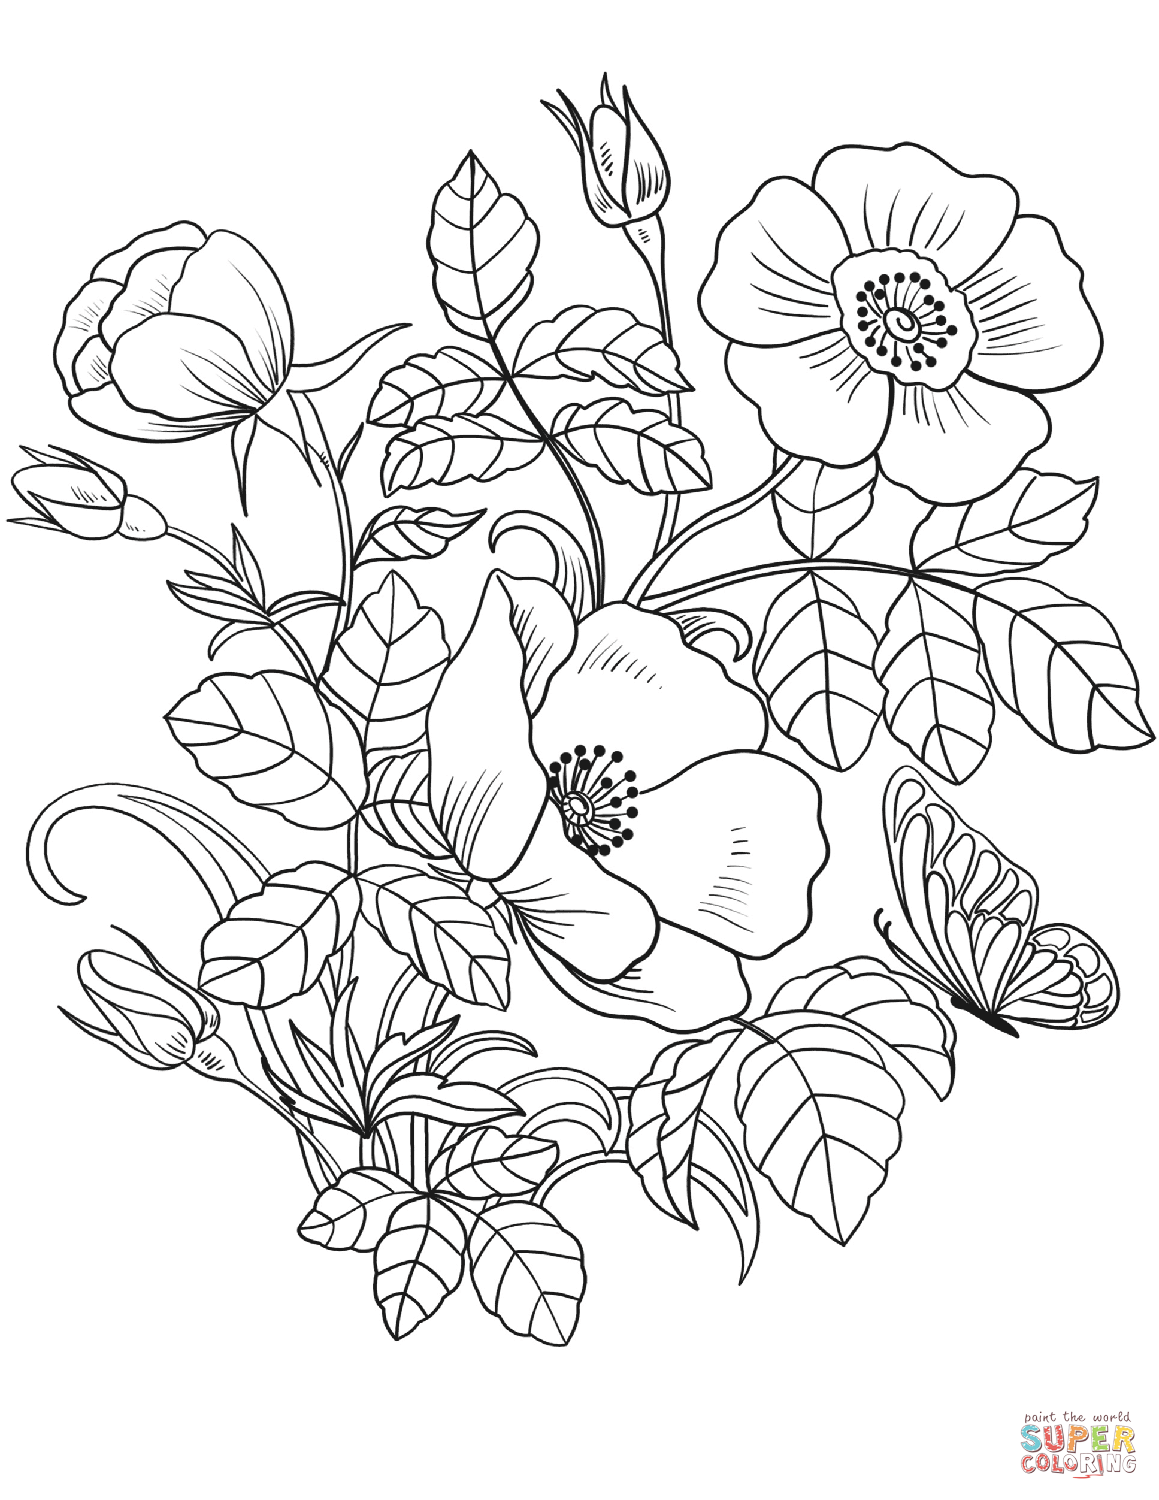 colouring pictures of plants spring flowers coloring page free printable coloring pages pictures colouring of plants